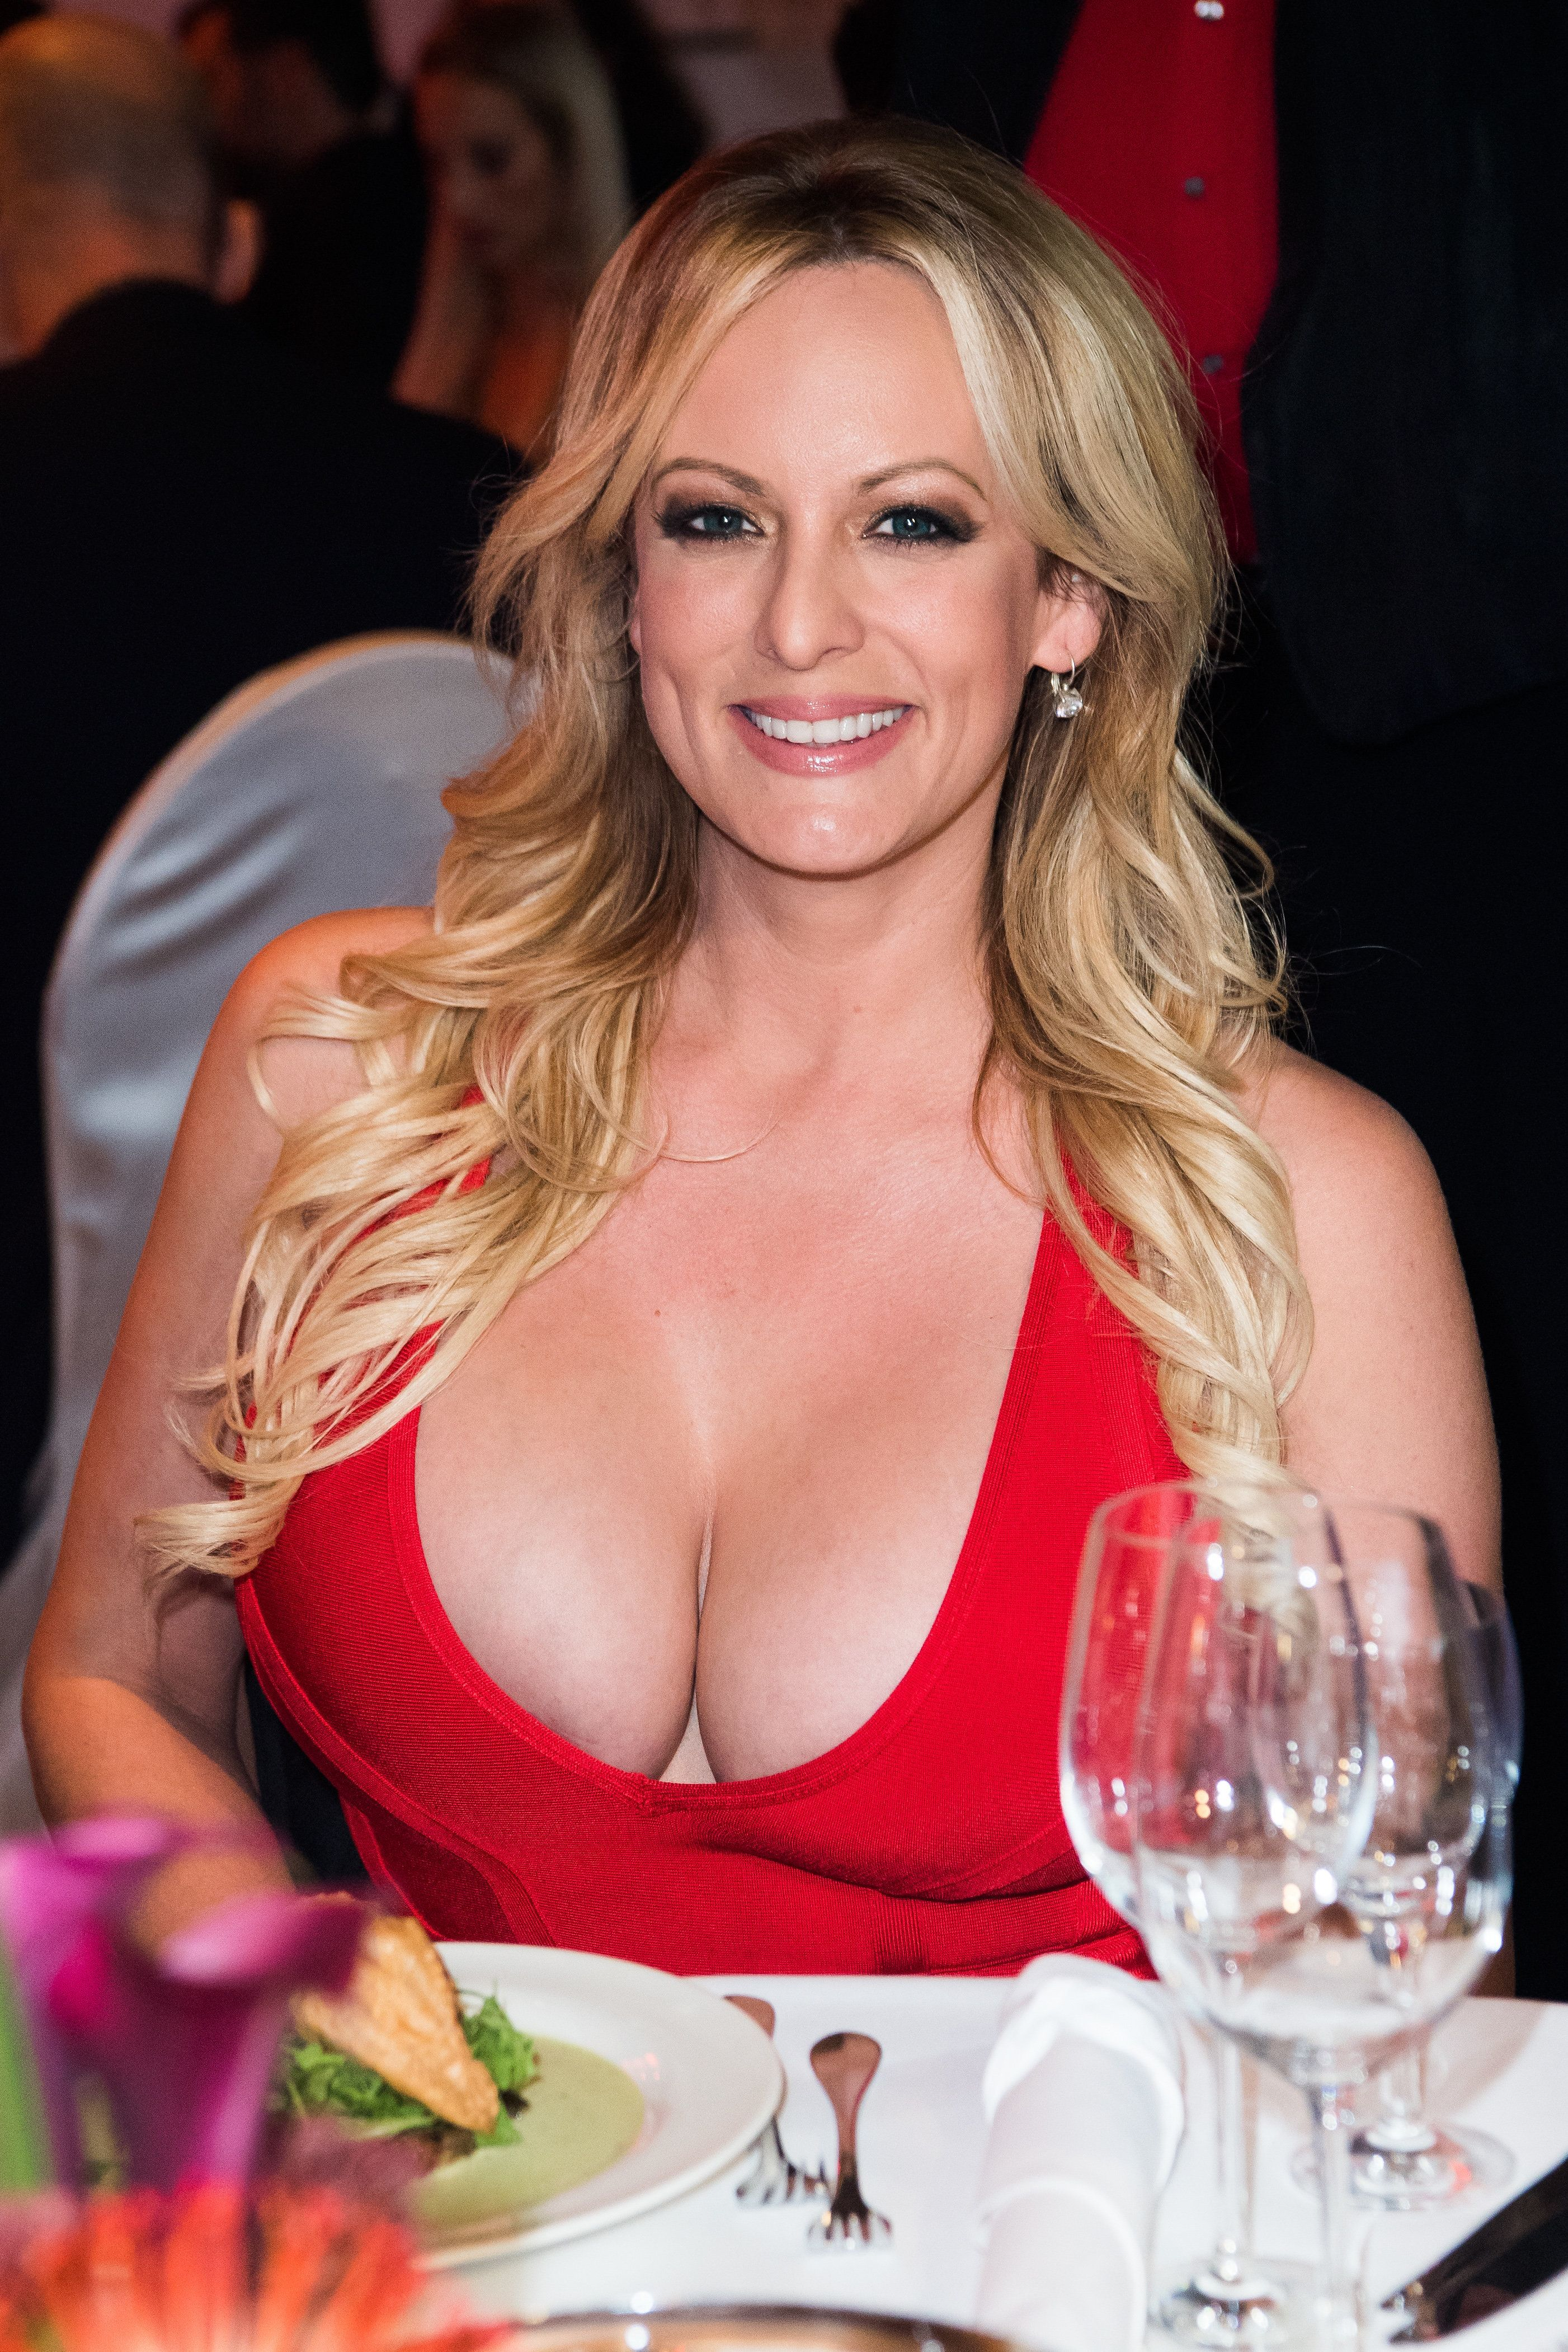 BERLIN, GERMANY - OCTOBER 11:  Stormy Daniels attends the Venus Award during the Venus Erotic Fair 2018 at Hotel Ellington on October 11, 2018 in Berlin, Germany. She was honorated with a special award for her lifetime achievement in the erotic industry.  (Photo by Matthias Nareyek/Getty Images)